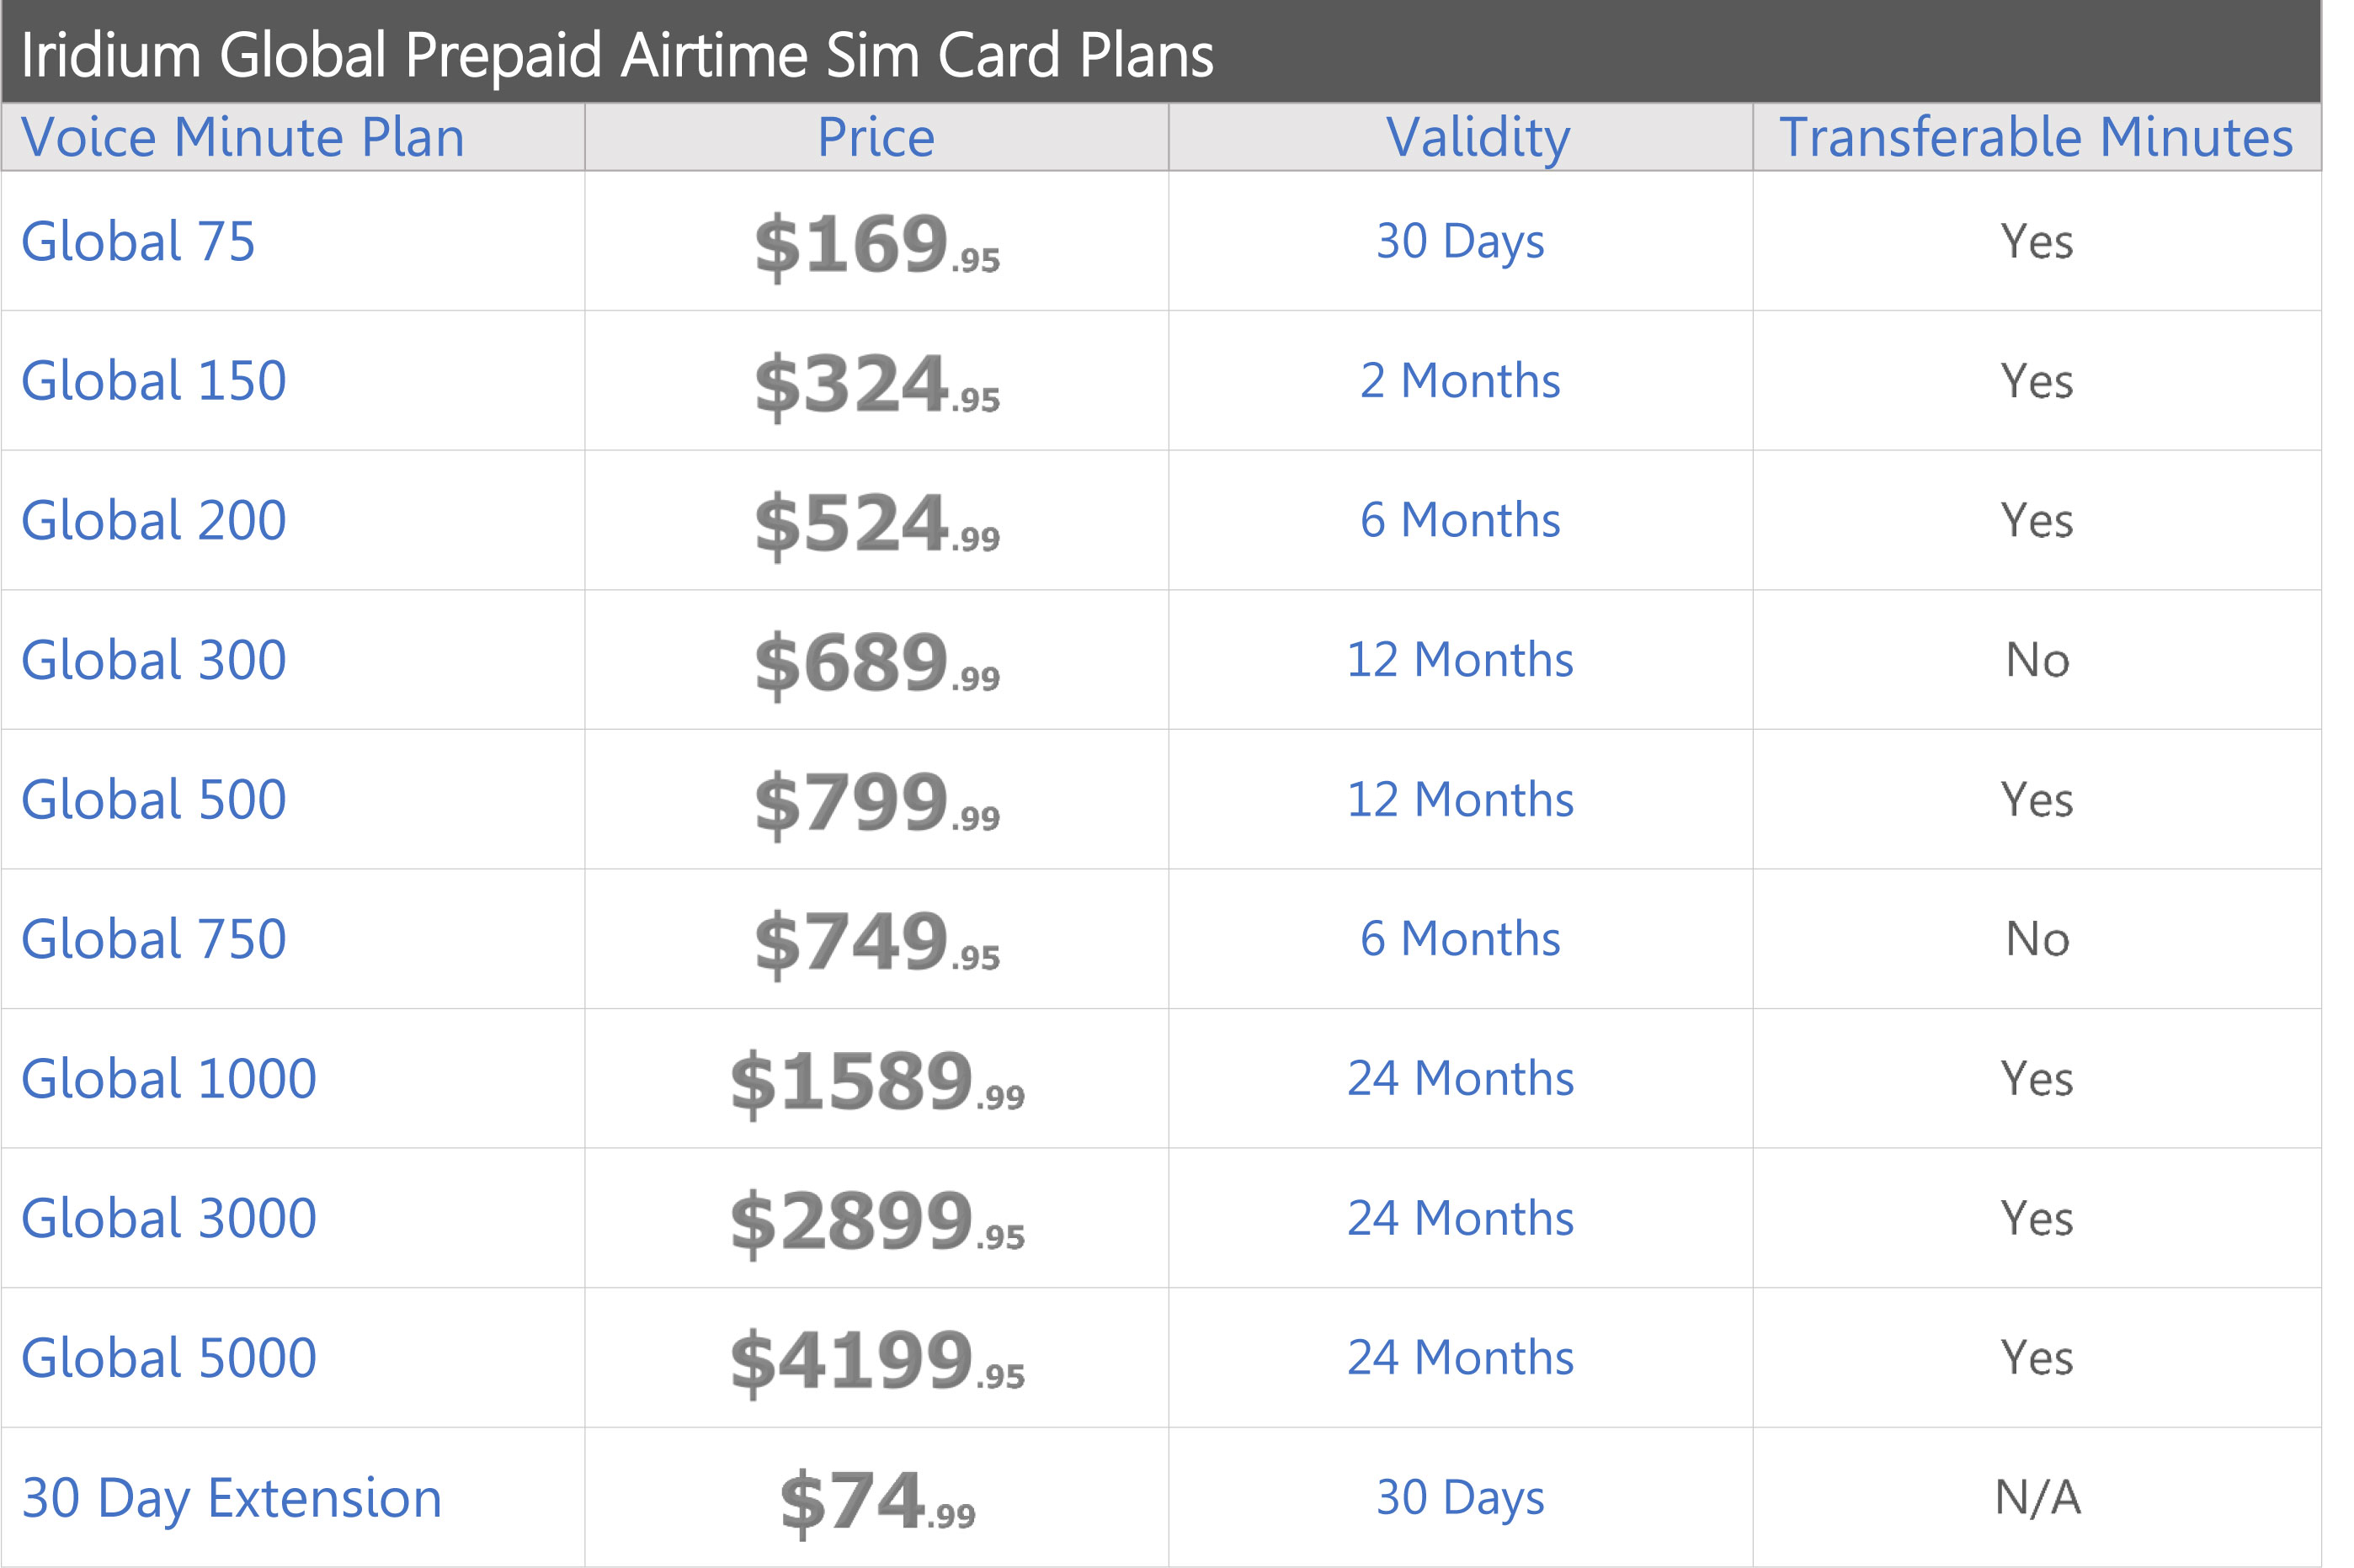 iridium-prepaid-global-airtime-service-plans-price-chart-northernaxcess-2018.jpg